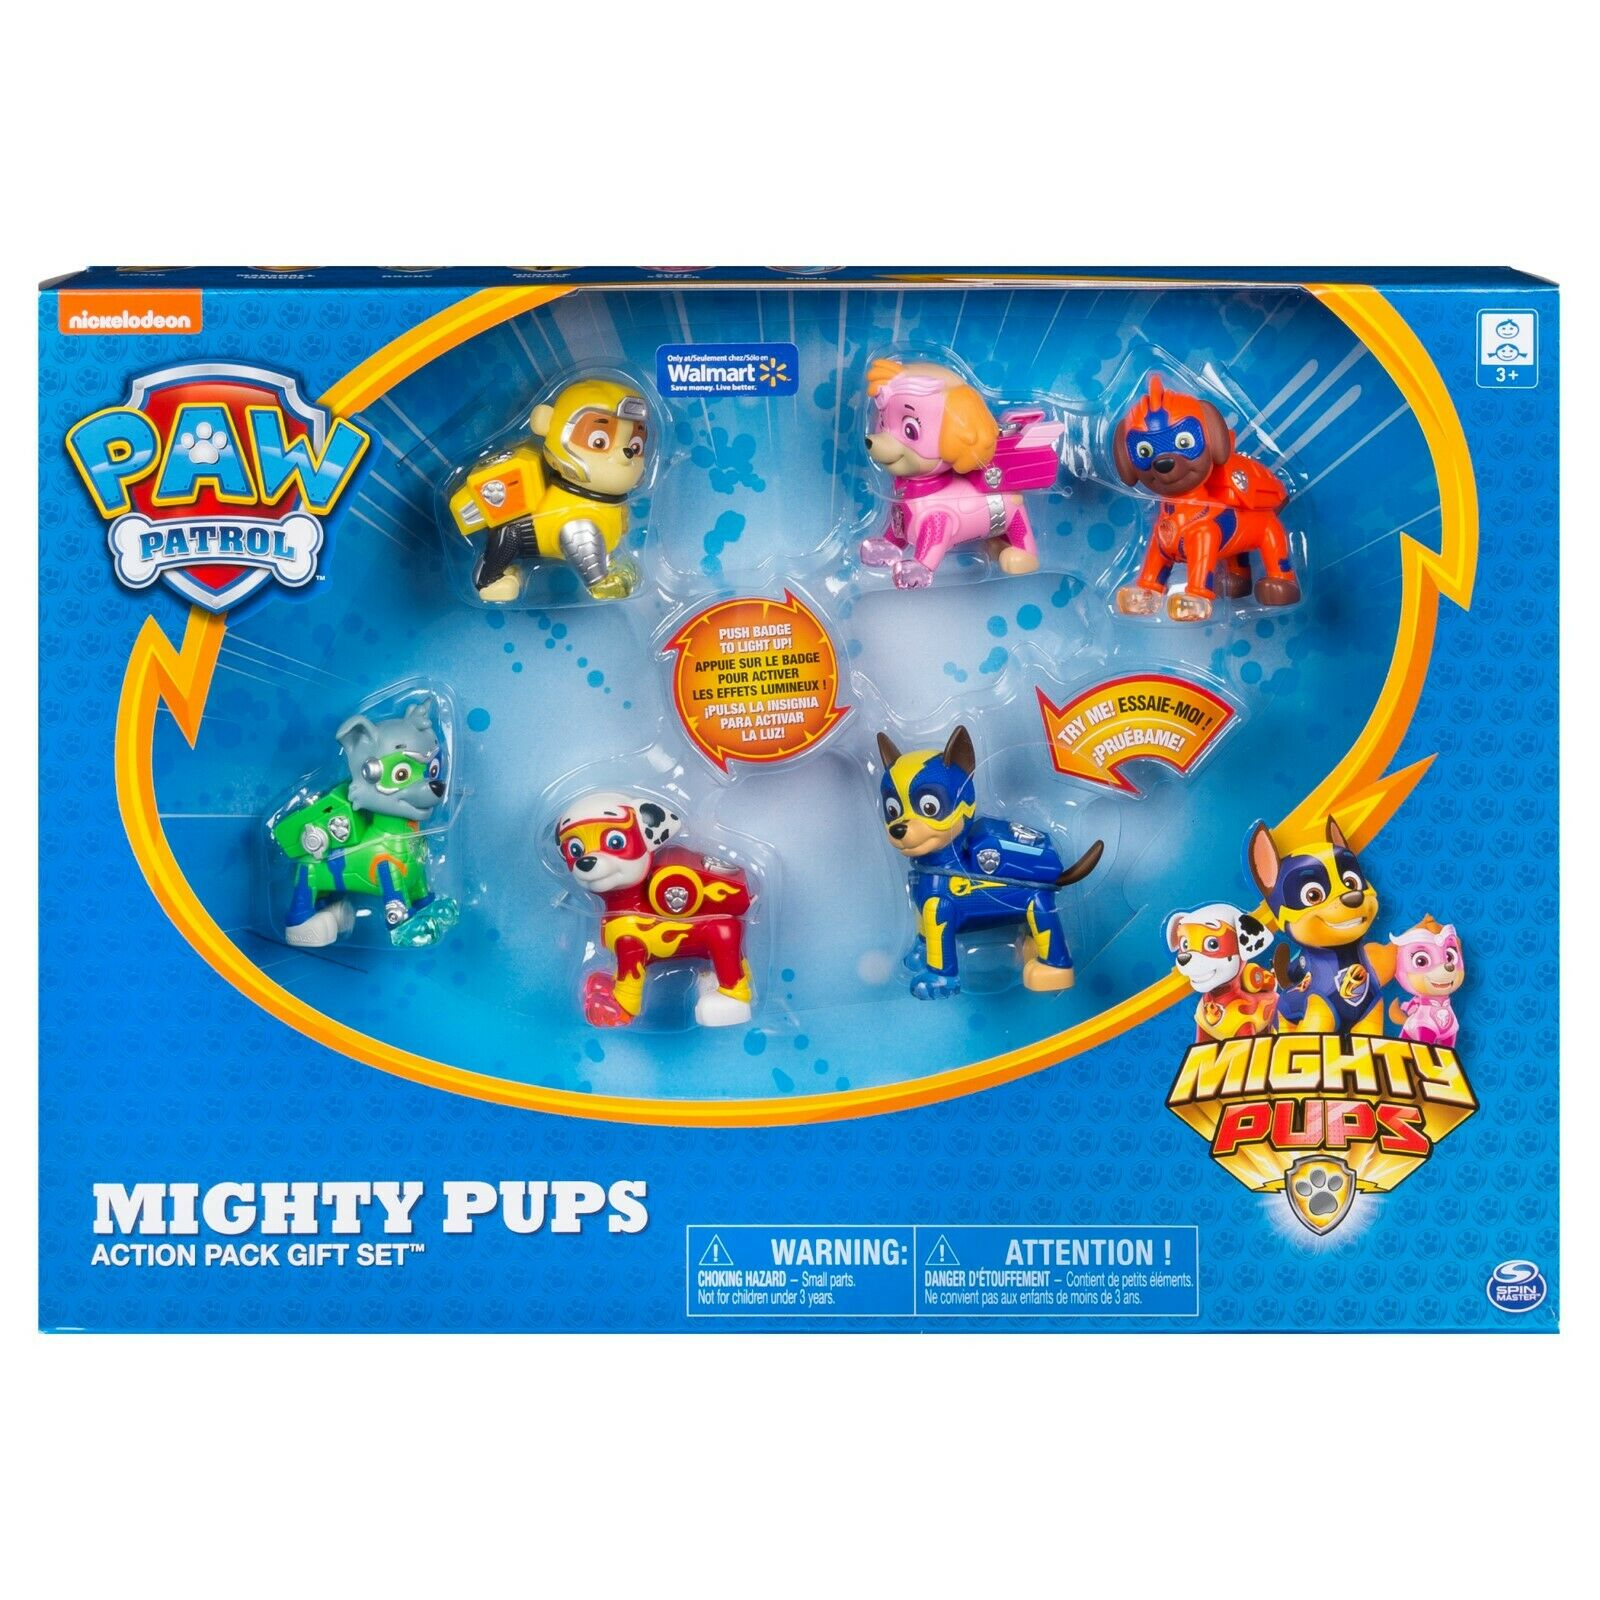 PAW Patrol - Mighty Pups 6-Pack Gift Set, PAW Patrol Figures with Light-up Badge